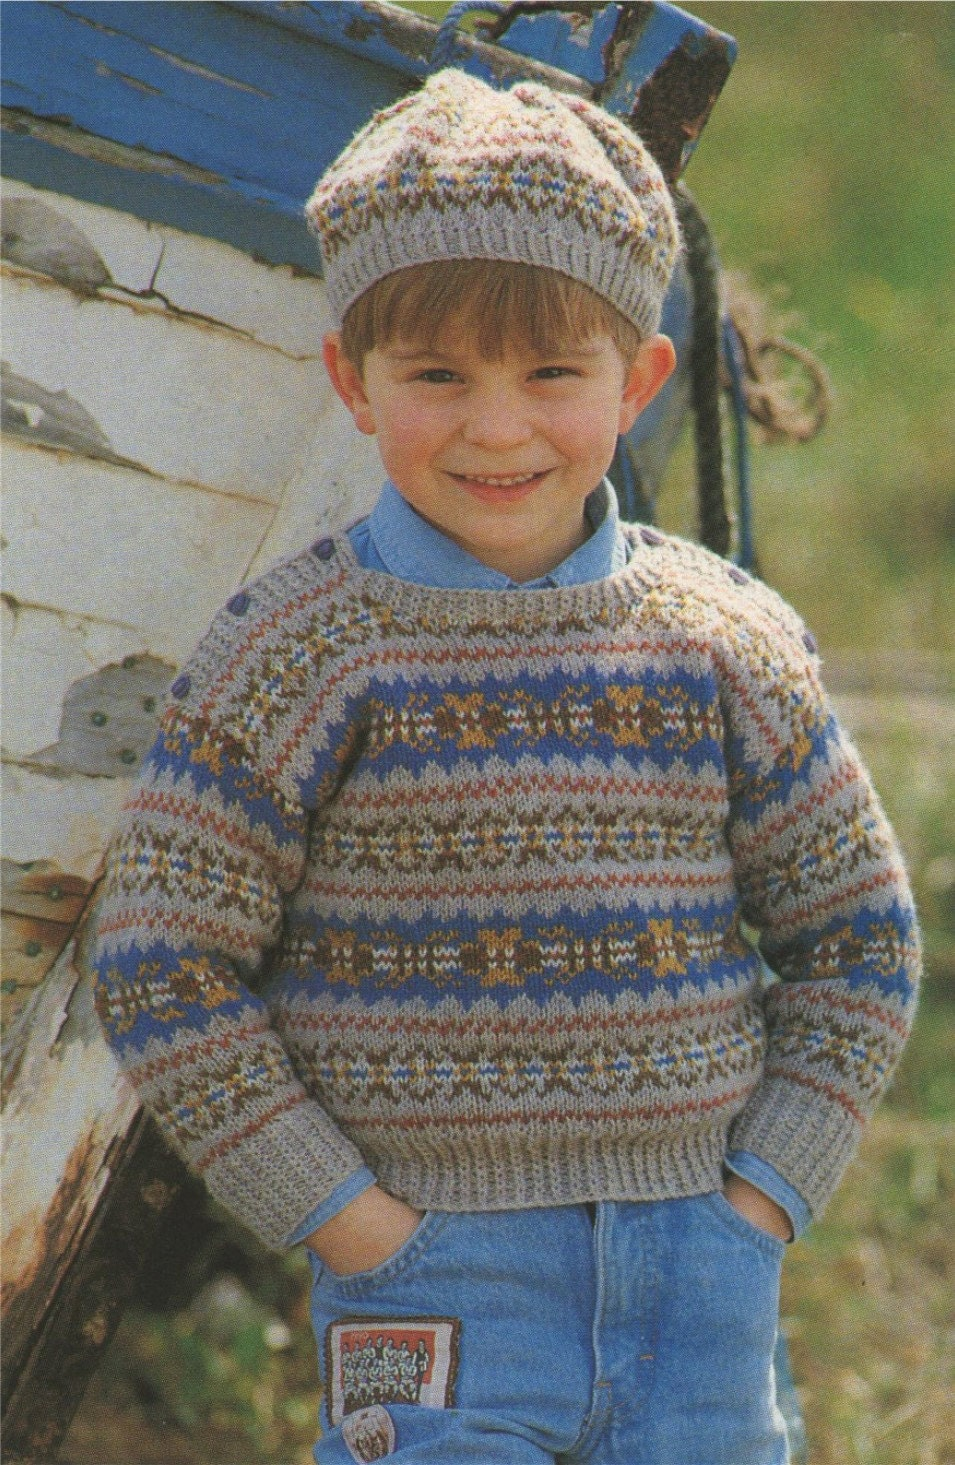 Toddler Jumper Knitting Pattern : Childrens Fair Isle Sweater and Beret Knitting Pattern : Boy or Girl . Toddle...